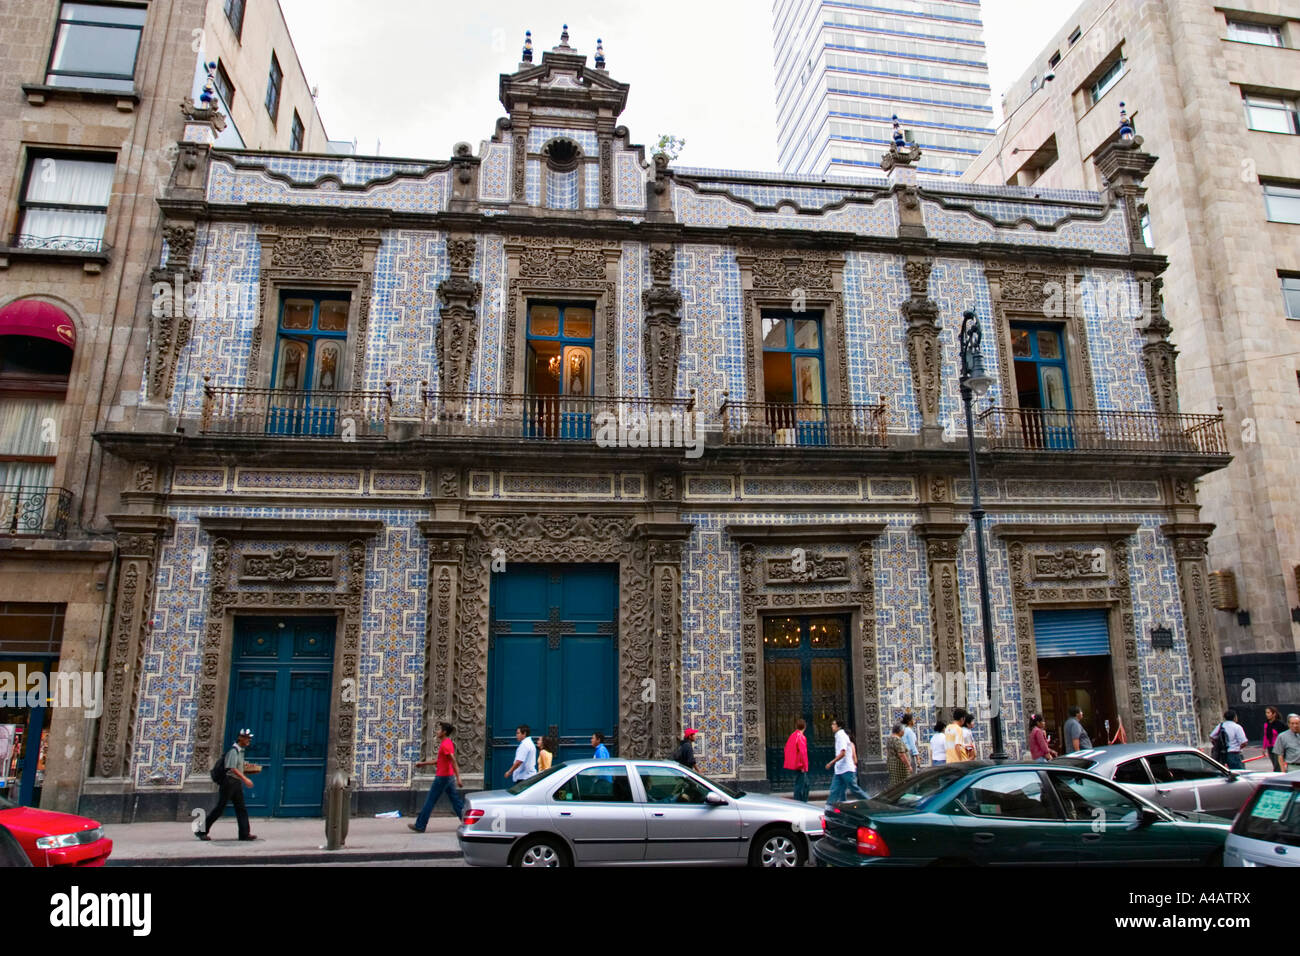 Casa de los azulejos mexico city mexico stock photo for Azulejos restaurante